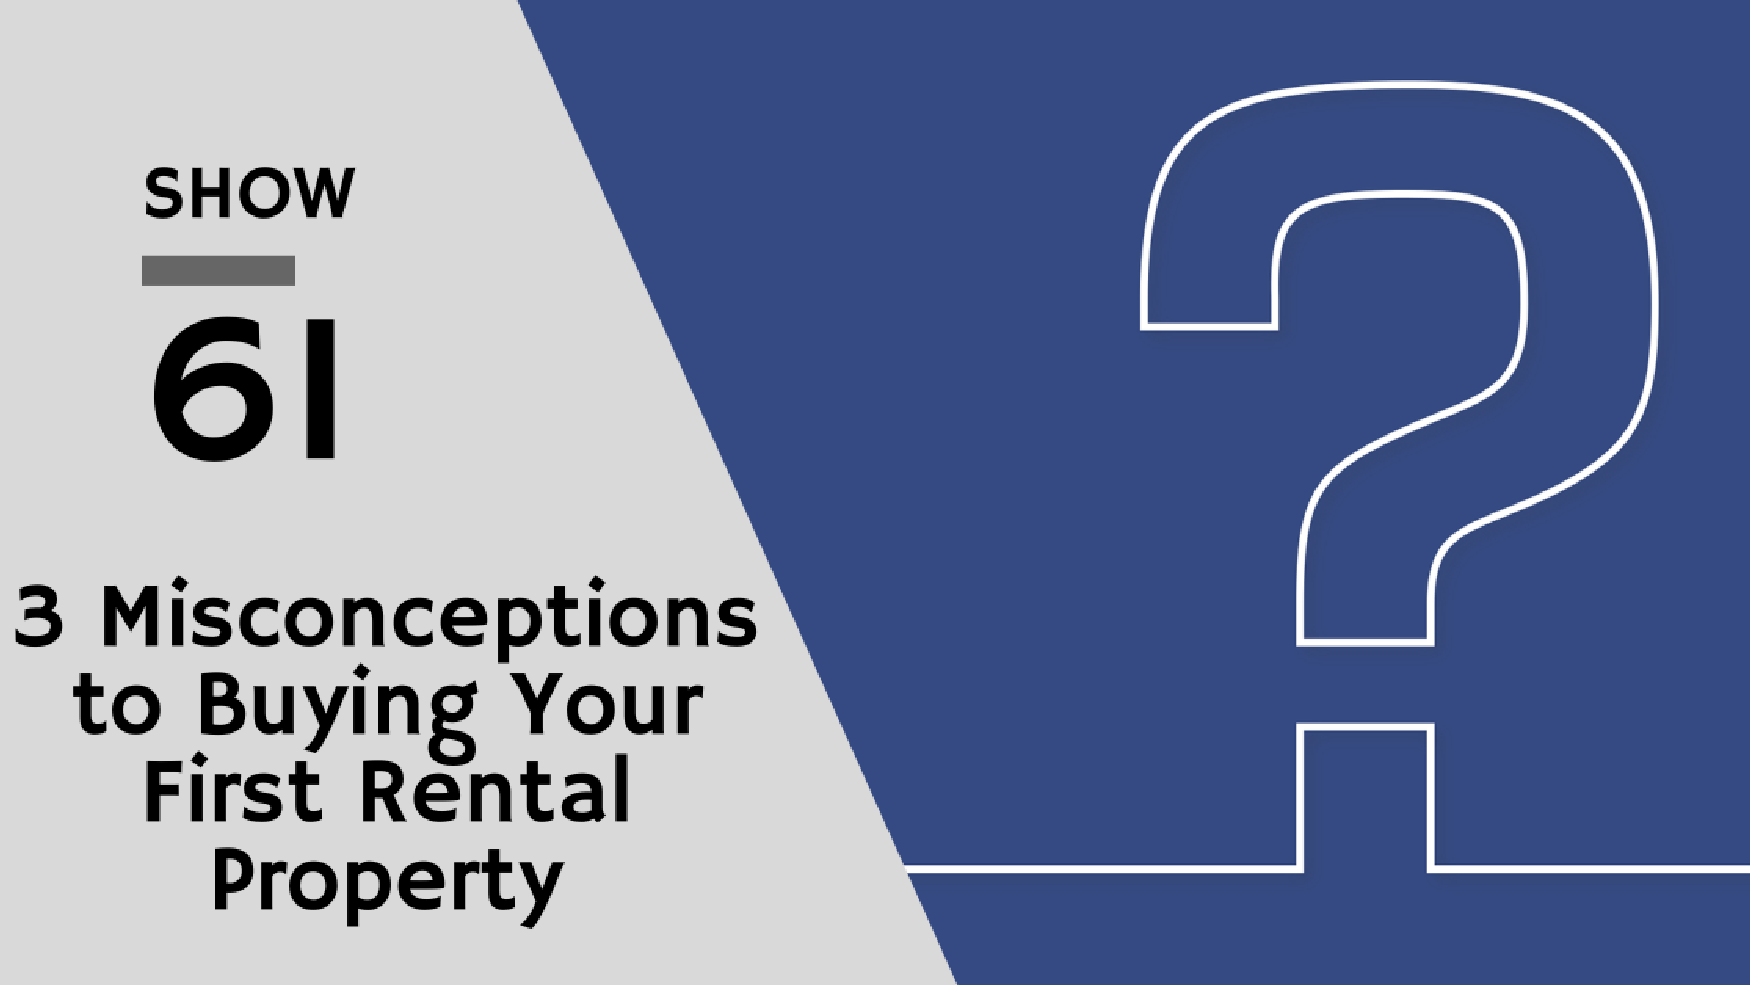 show061 3 misconceptions to buying your first rental property rental rookie. Black Bedroom Furniture Sets. Home Design Ideas